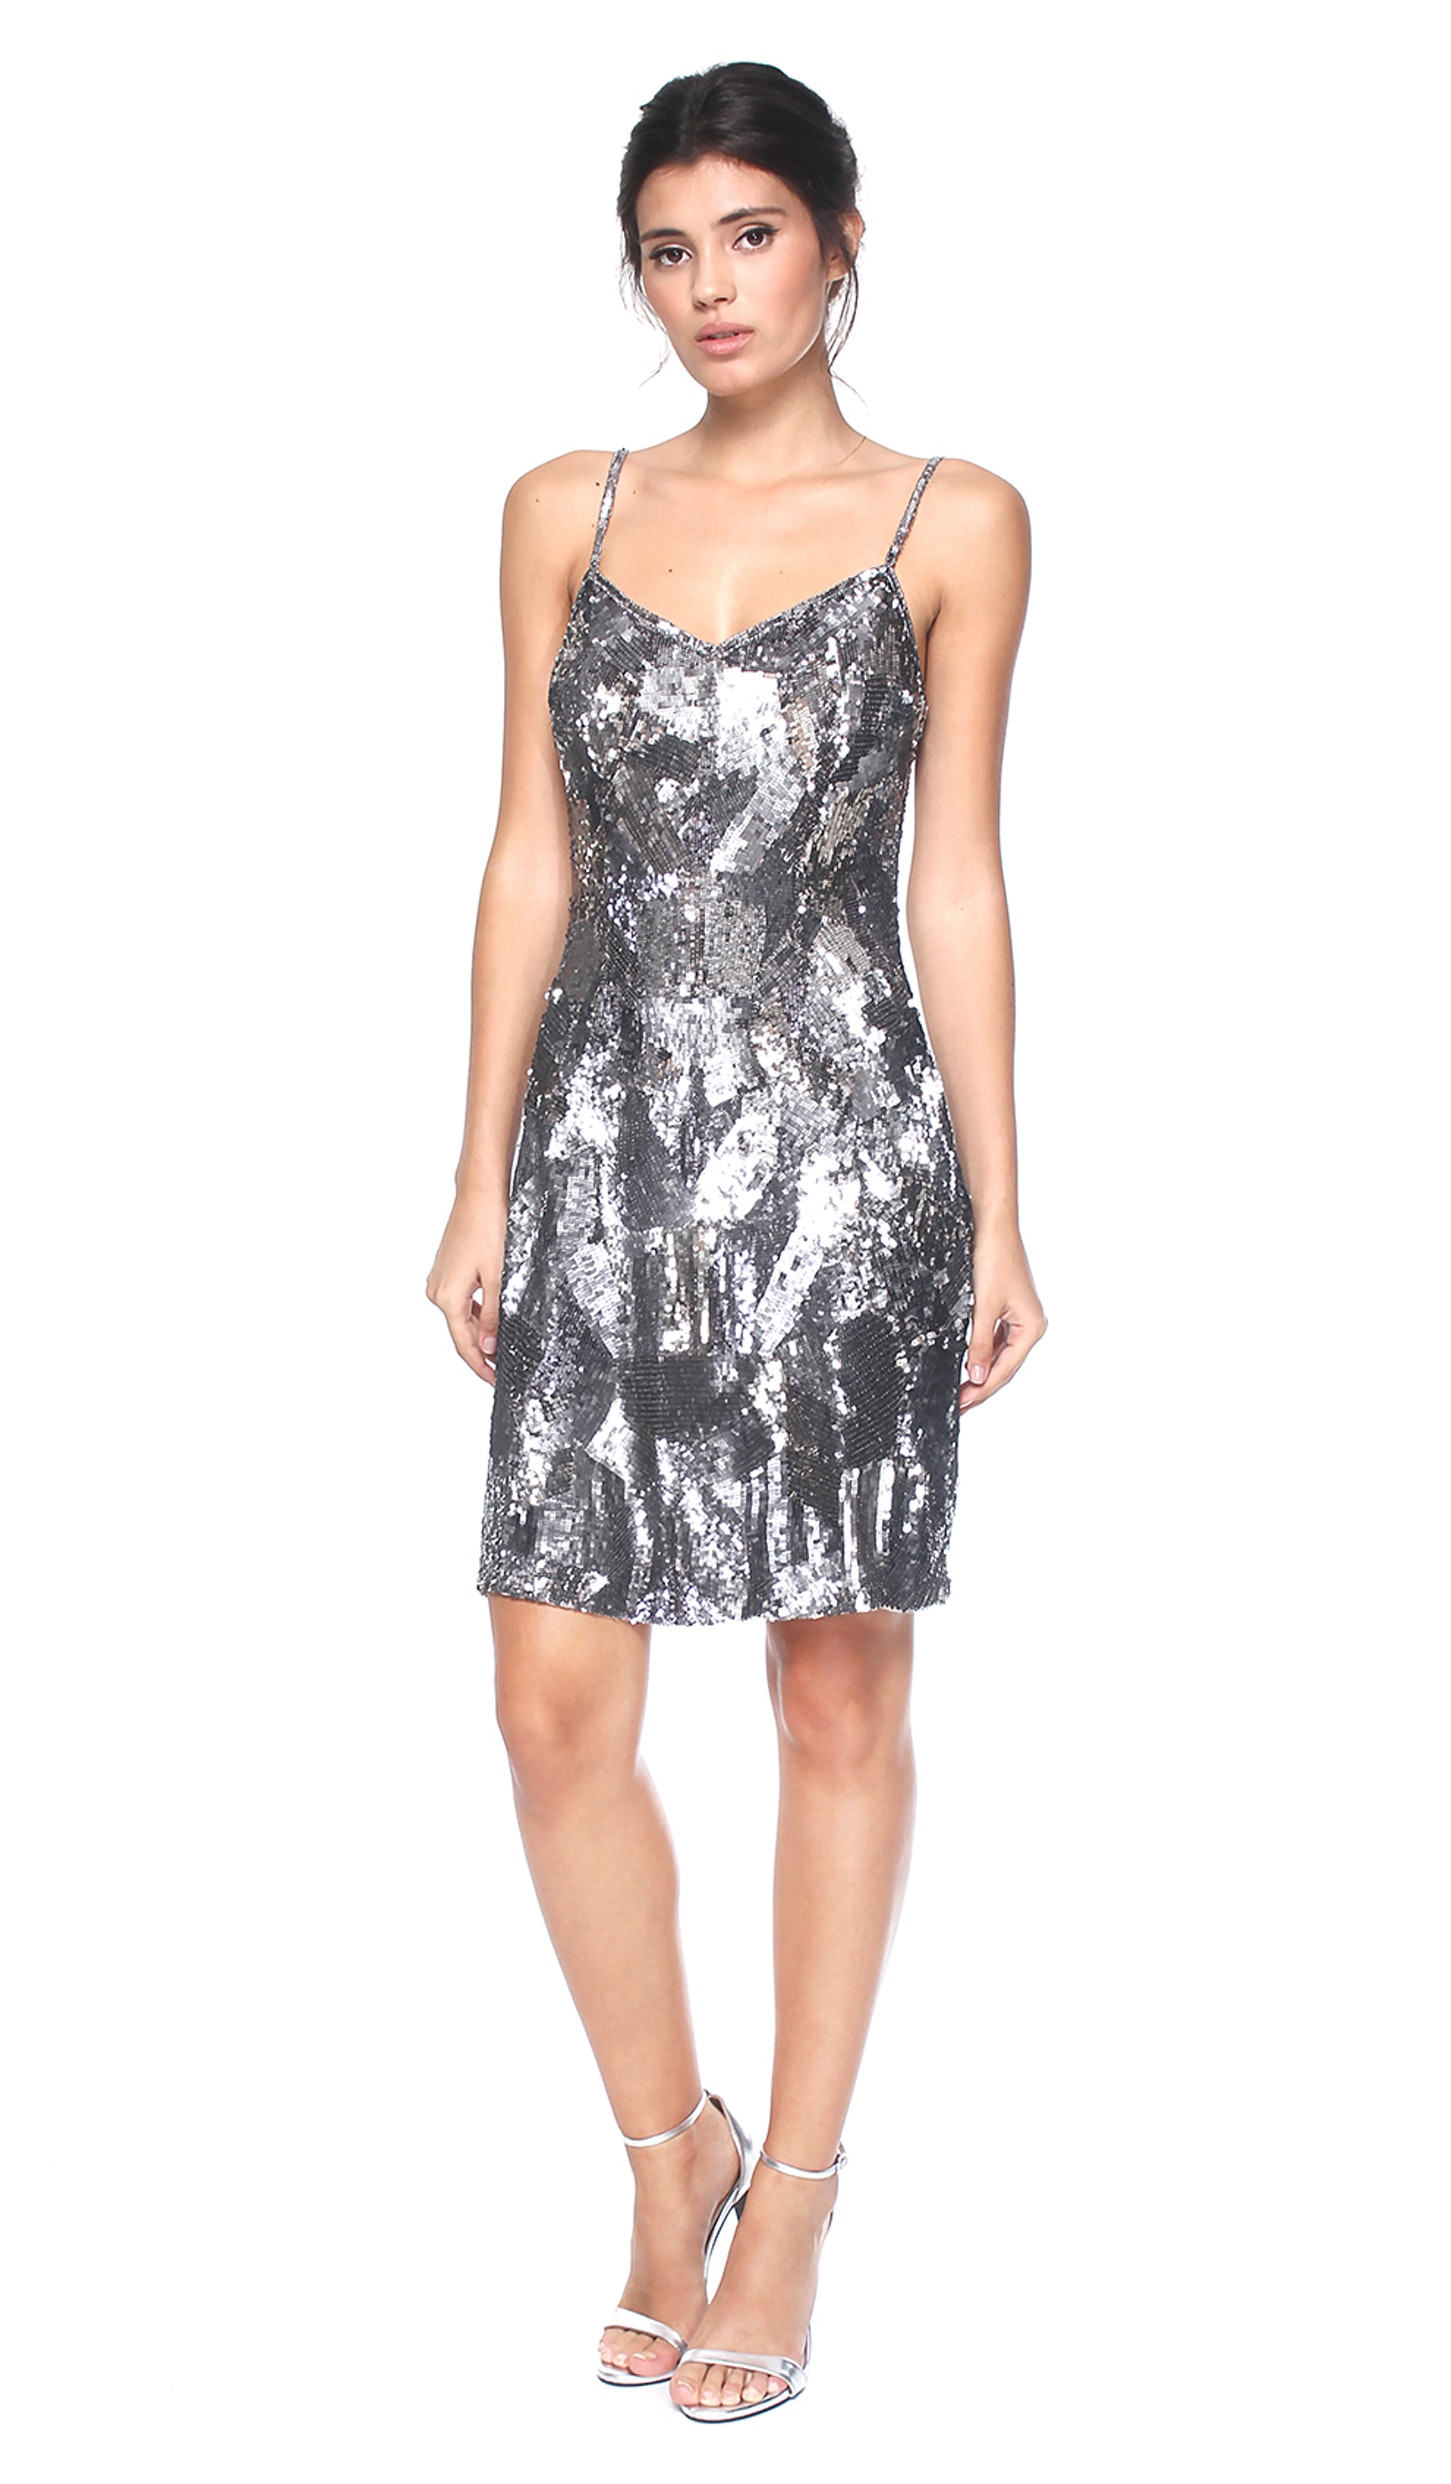 947e72a2f6d Grey Sequined Dress - THEIA COUTURE — Chic by Choice Sale